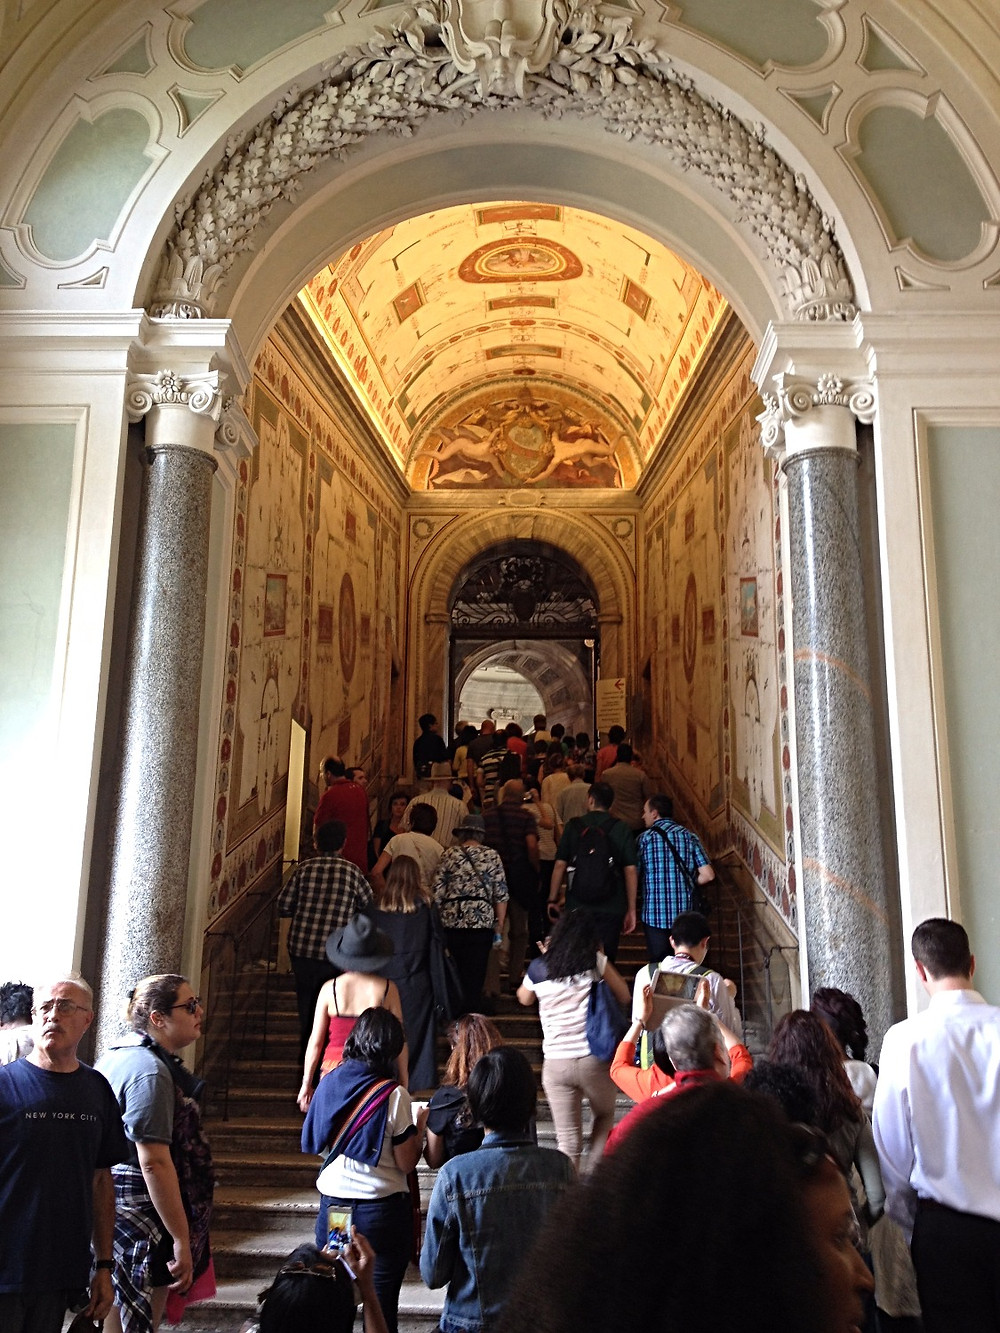 Crowds entering the Sistine Chapel, Rome